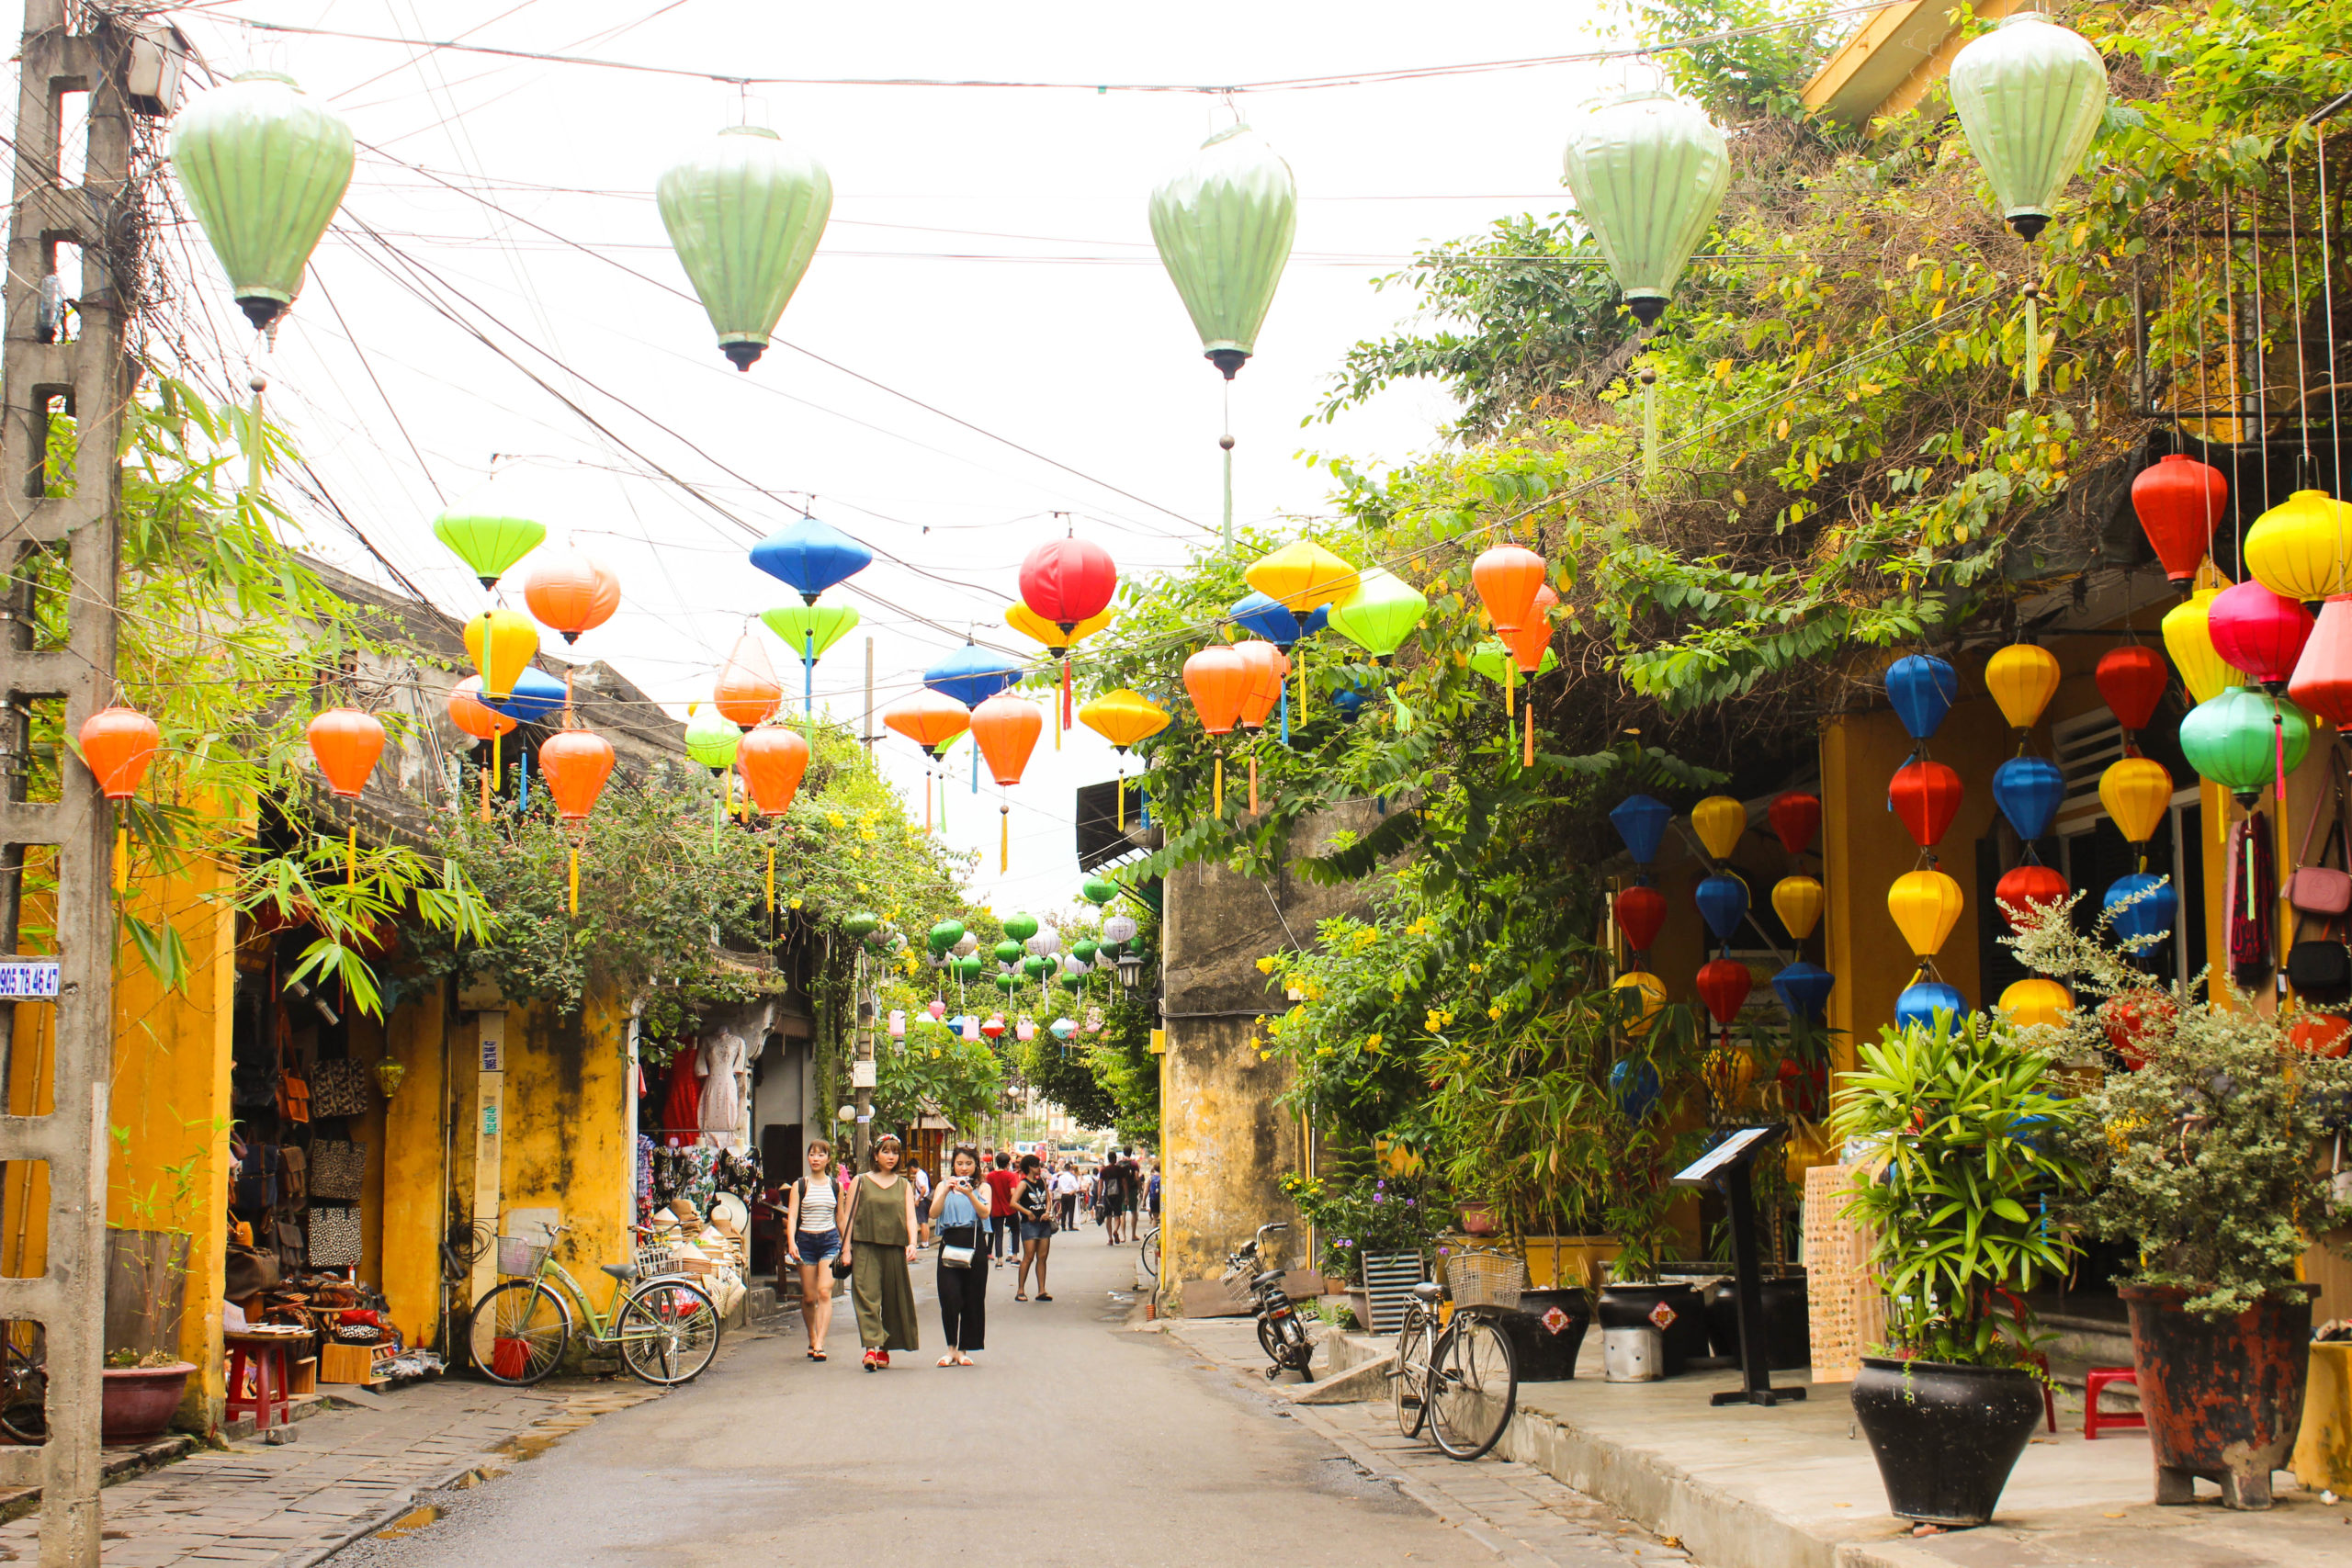 5 tips to enjoy Hoi An at its best